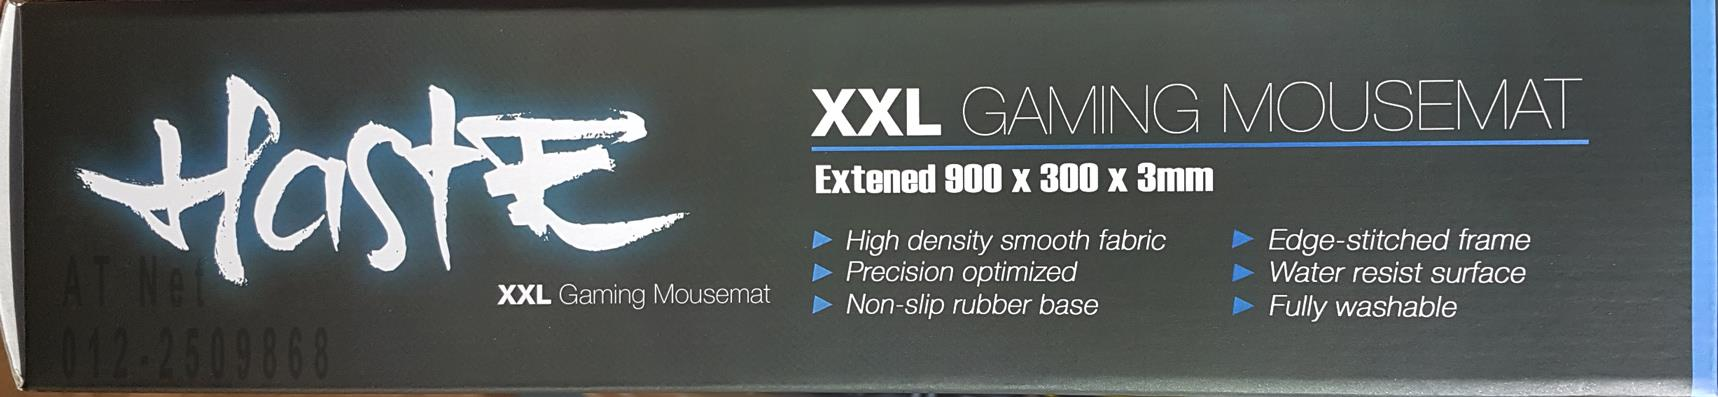 HASTE XXL GAMING MOUSEMAT 900 X 300 X 3MM